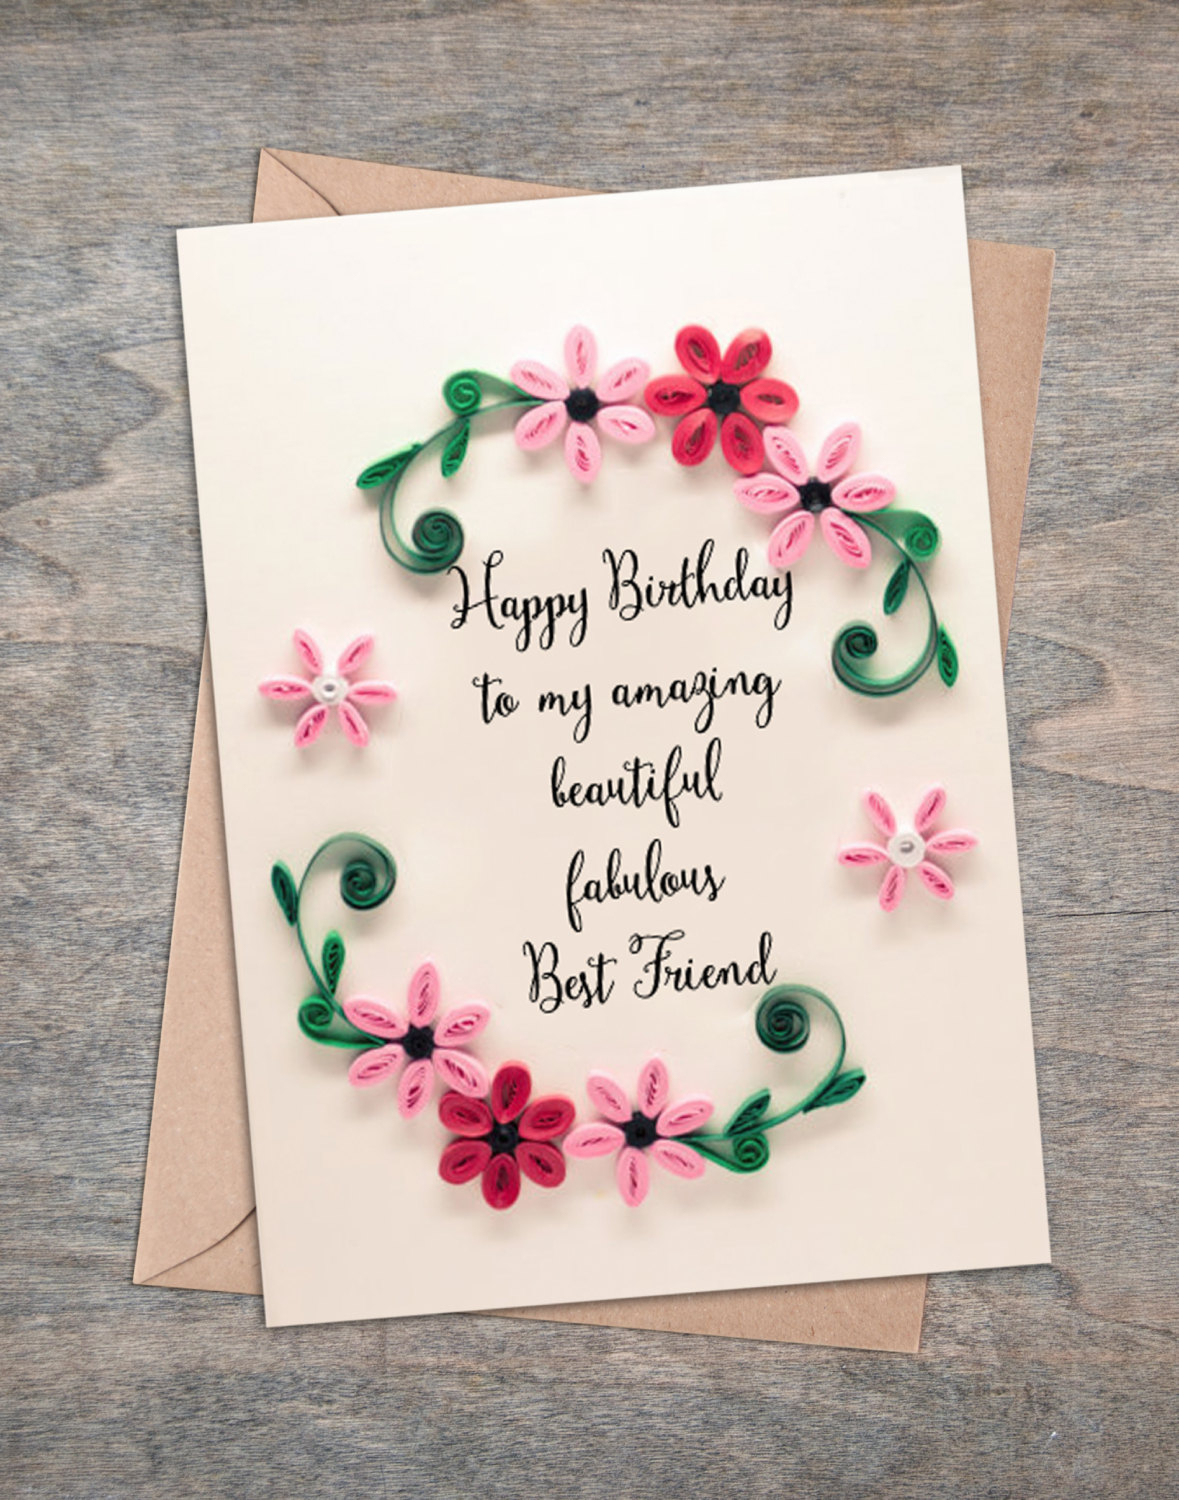 Cute Card Ideas For Birthday Birthday Card For An Aunt How To Make A Cute Ideas In Spanish Best